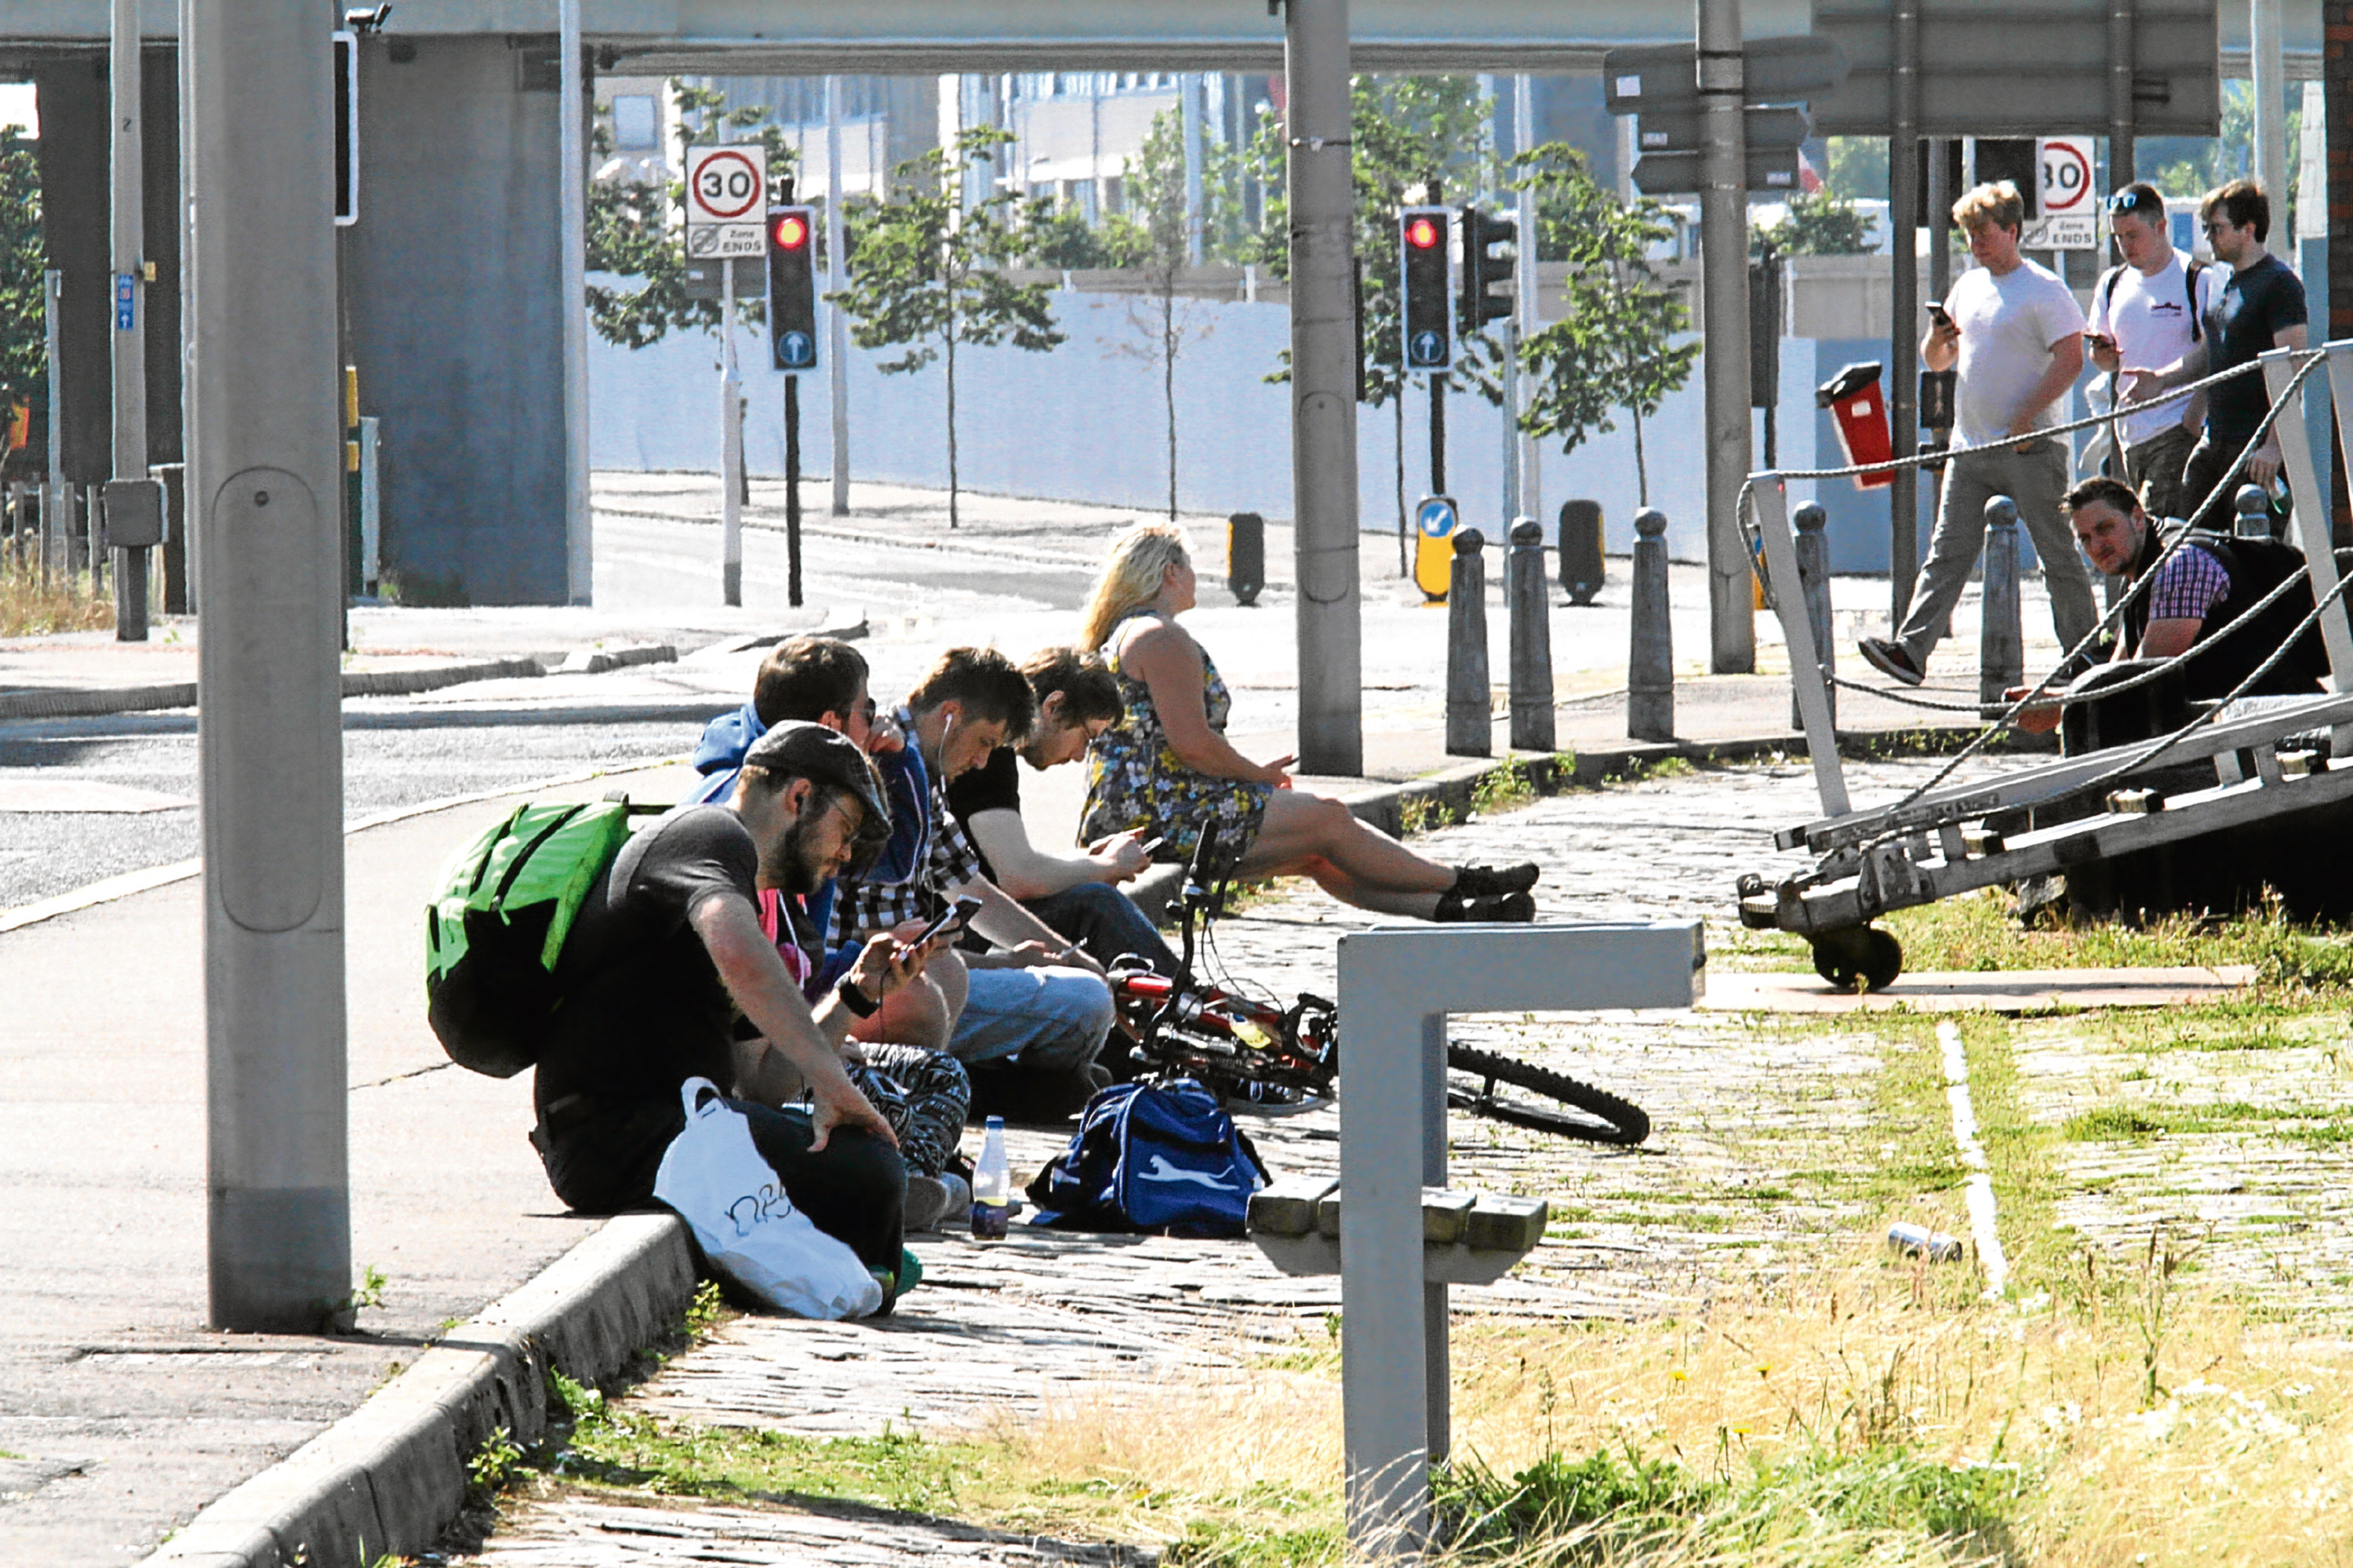 Pokemon Go fans pictured playing the hit game at City Quay in Dundee.